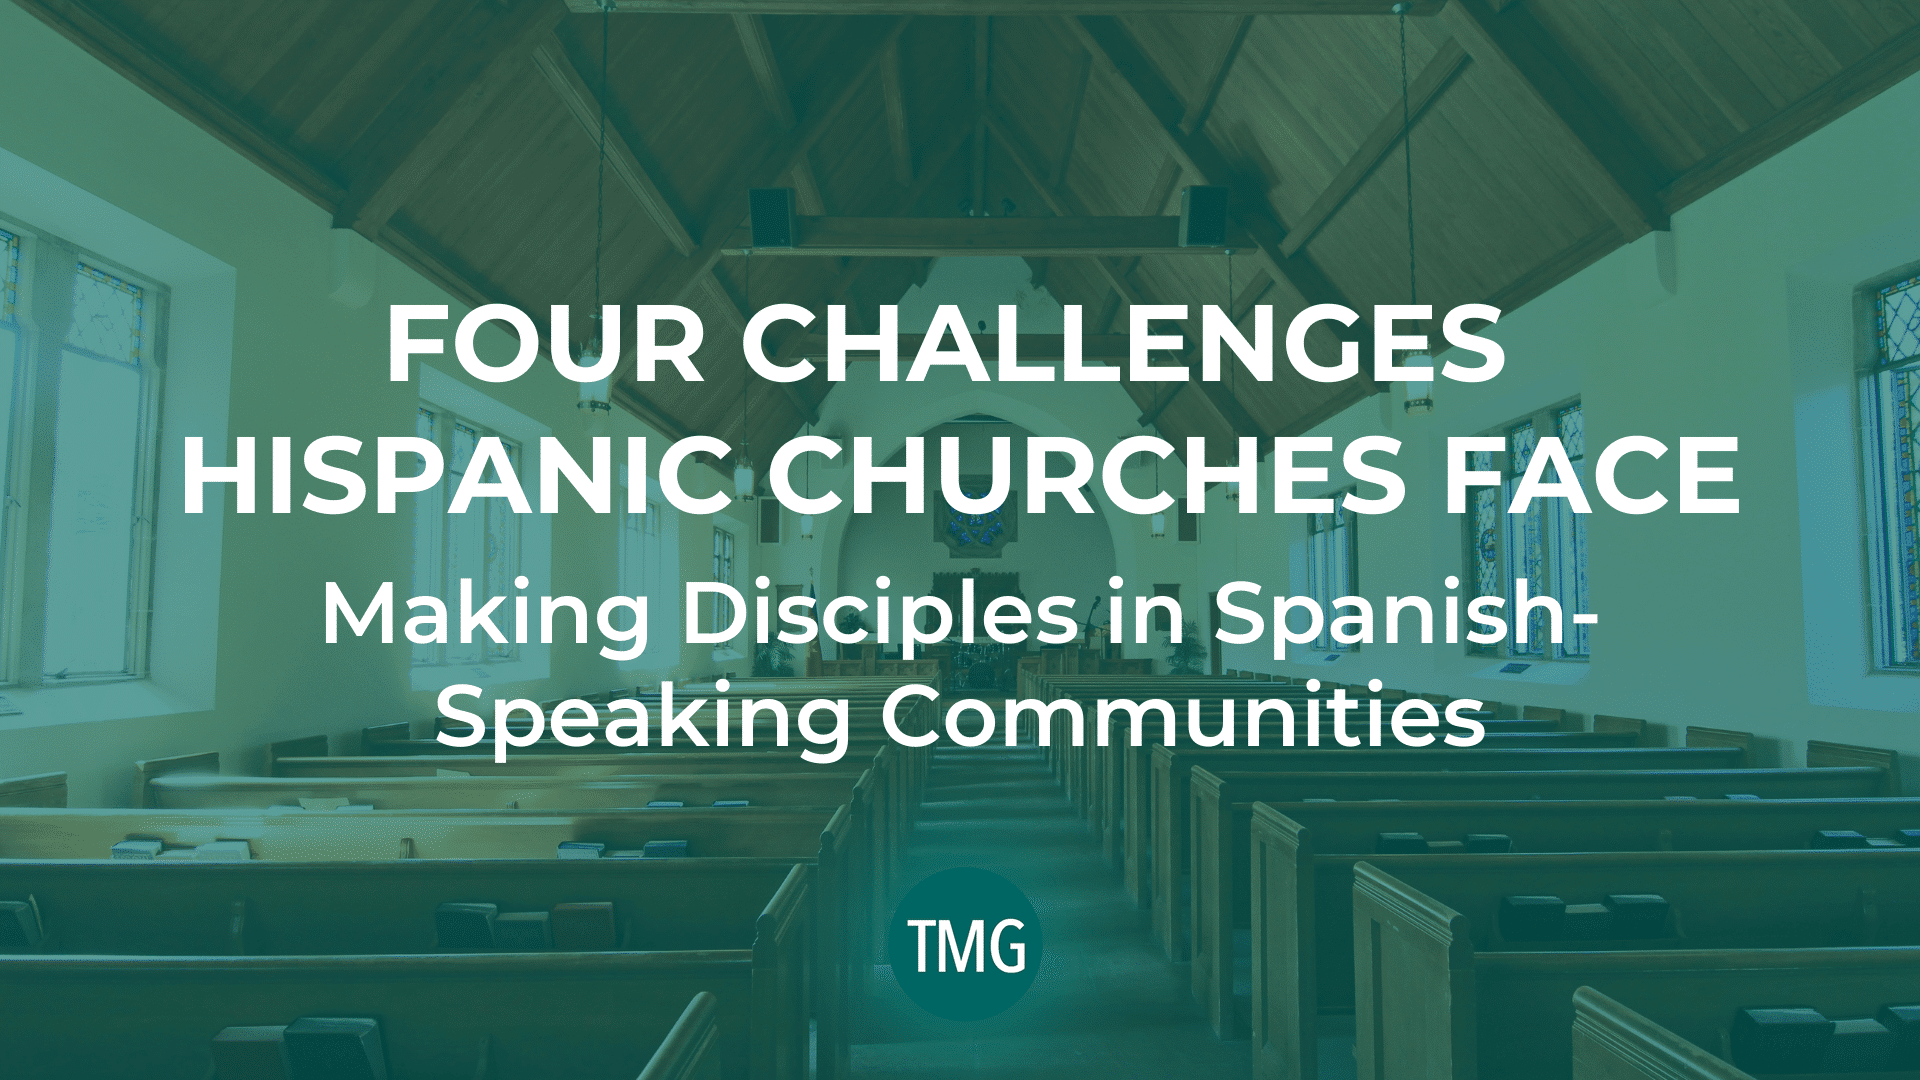 four-challenges-hispanic-churches-face-making-discples-in-spanish-speaking-communities-header-image